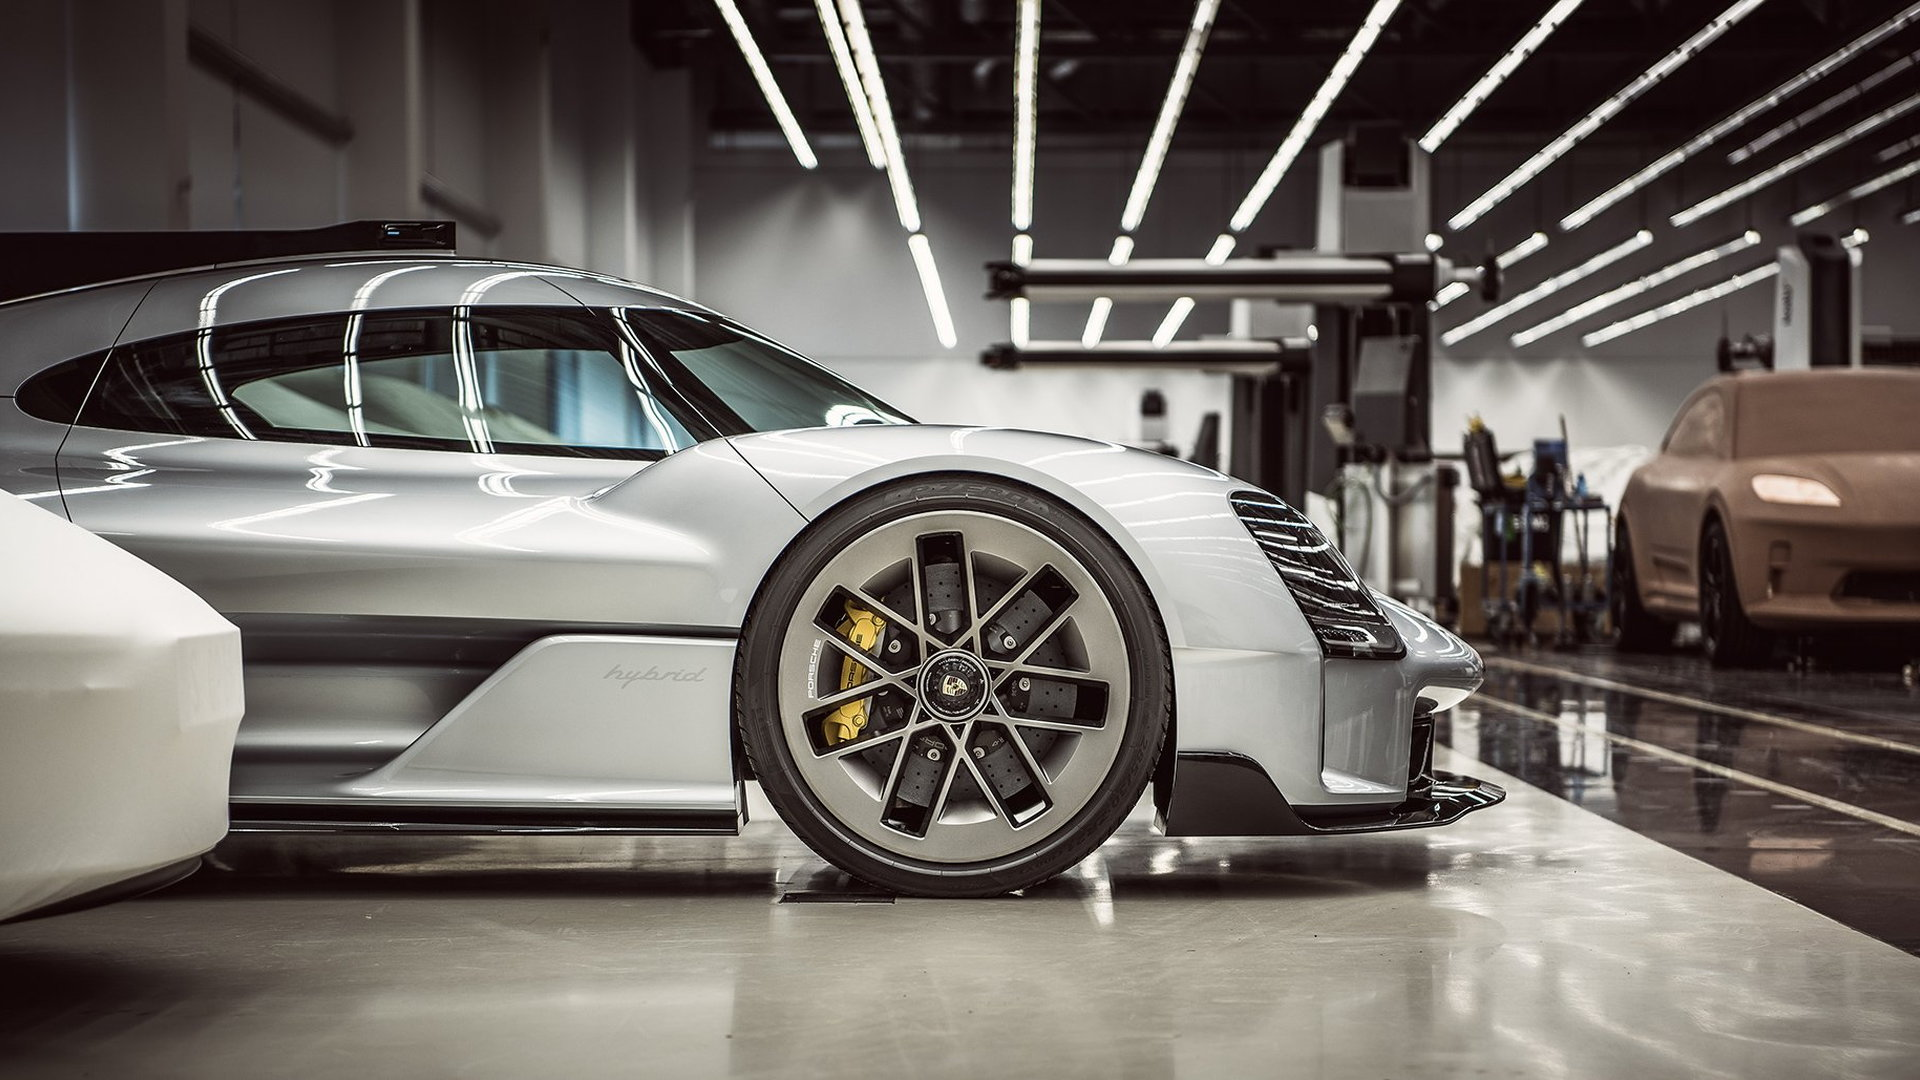 Porsche 919 Street and possible clay model for electric Porsche Macan